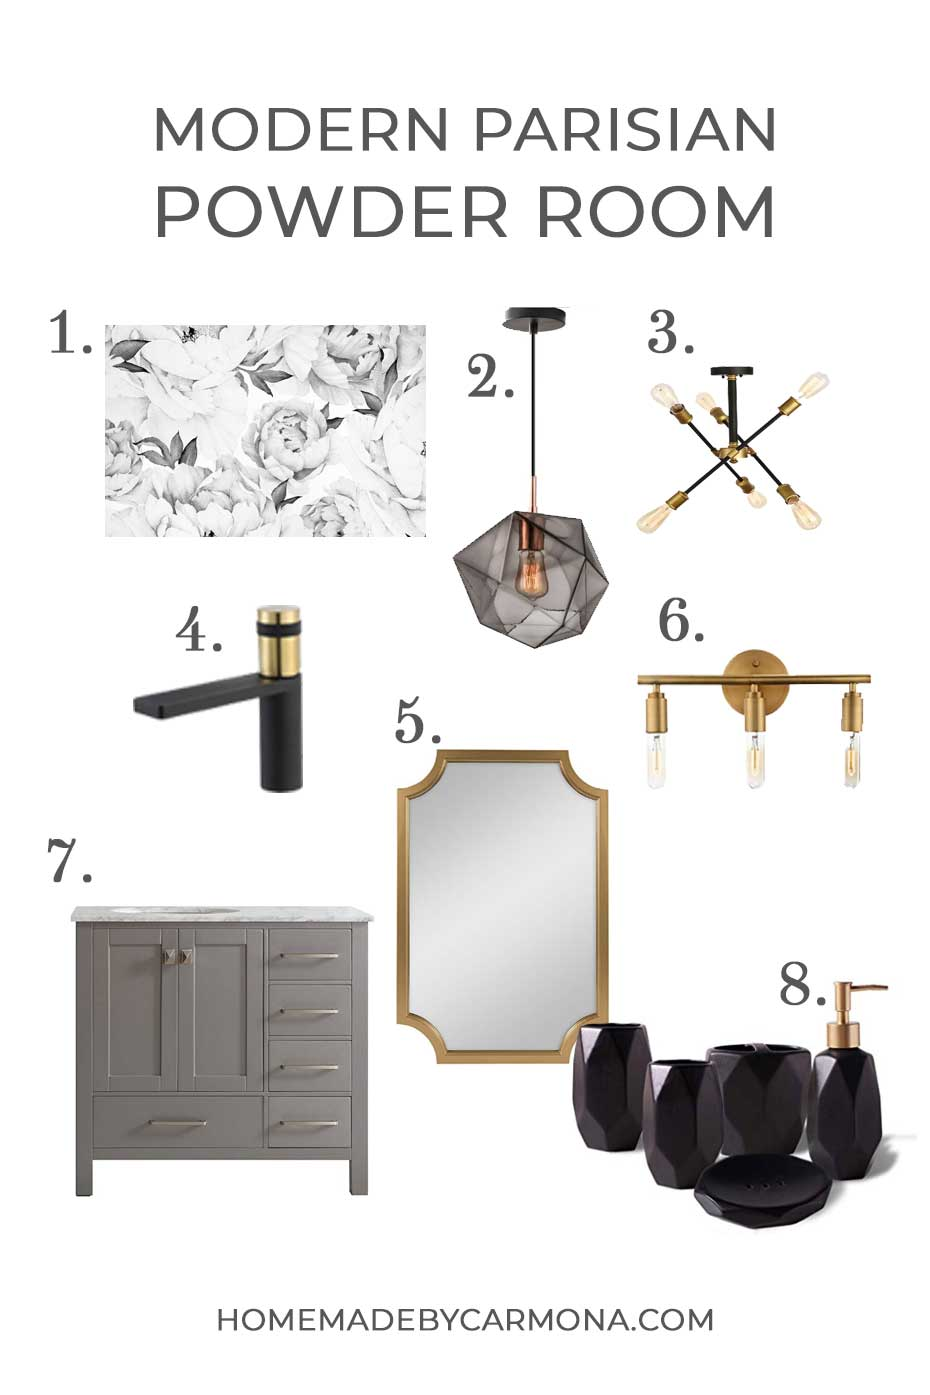 Modern-Parisian-Powder-Room-Moodboard